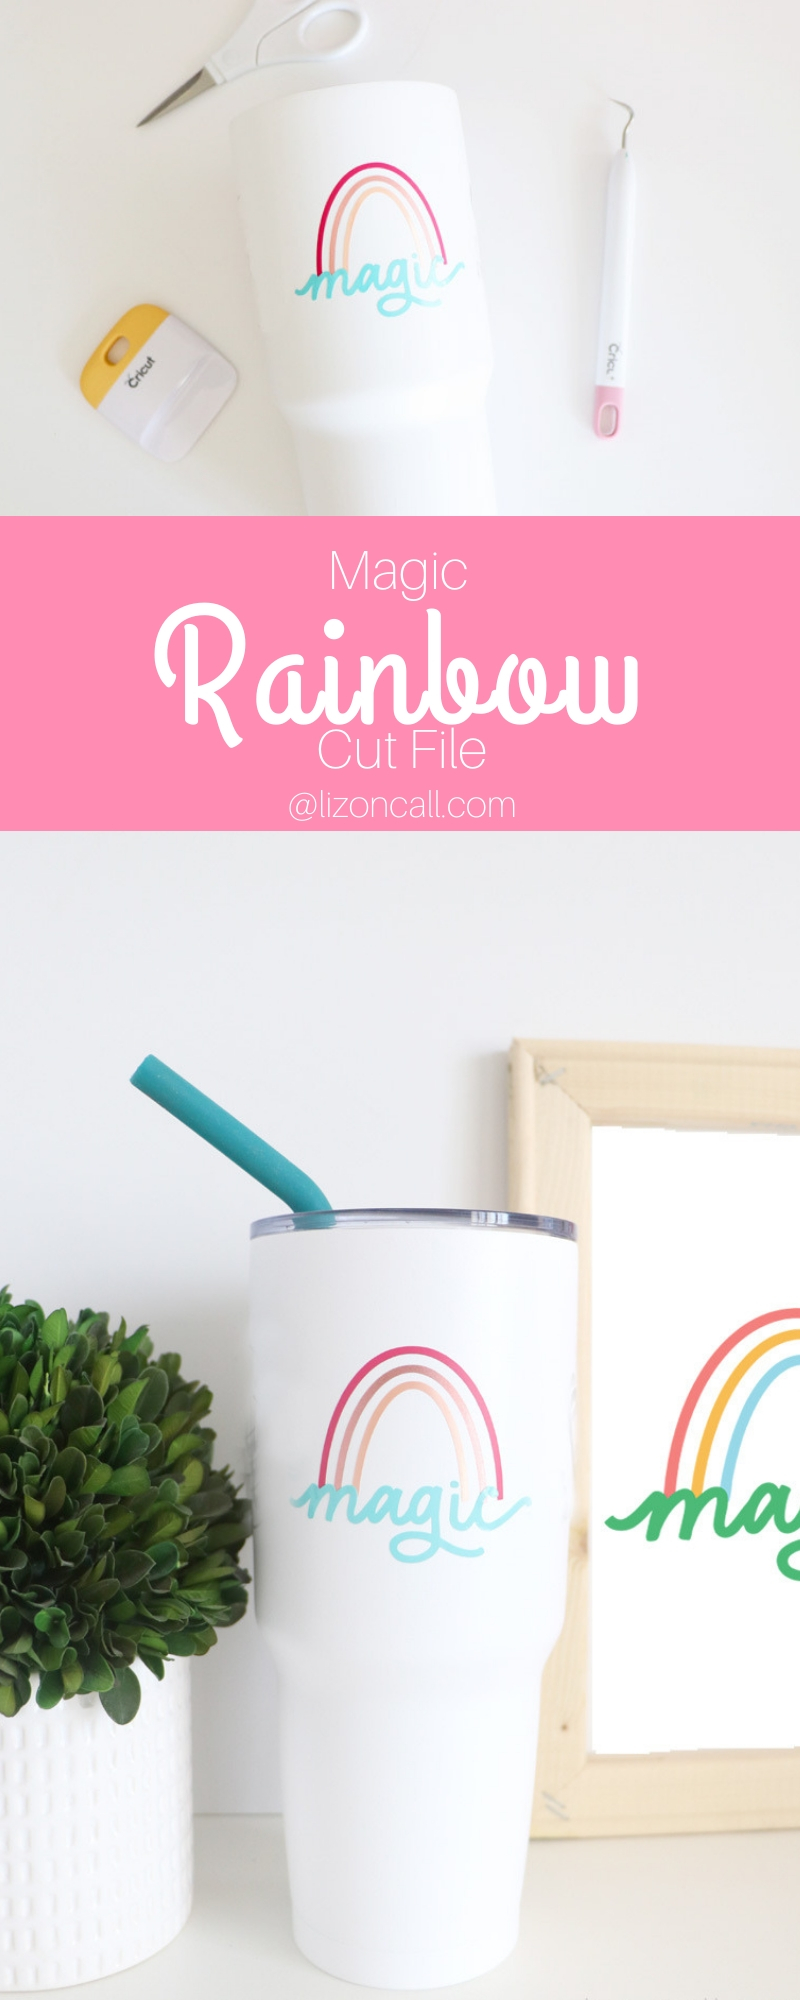 titled pinnable image of magic rainbow cut file cut out of vinyl and placed on a tumbler